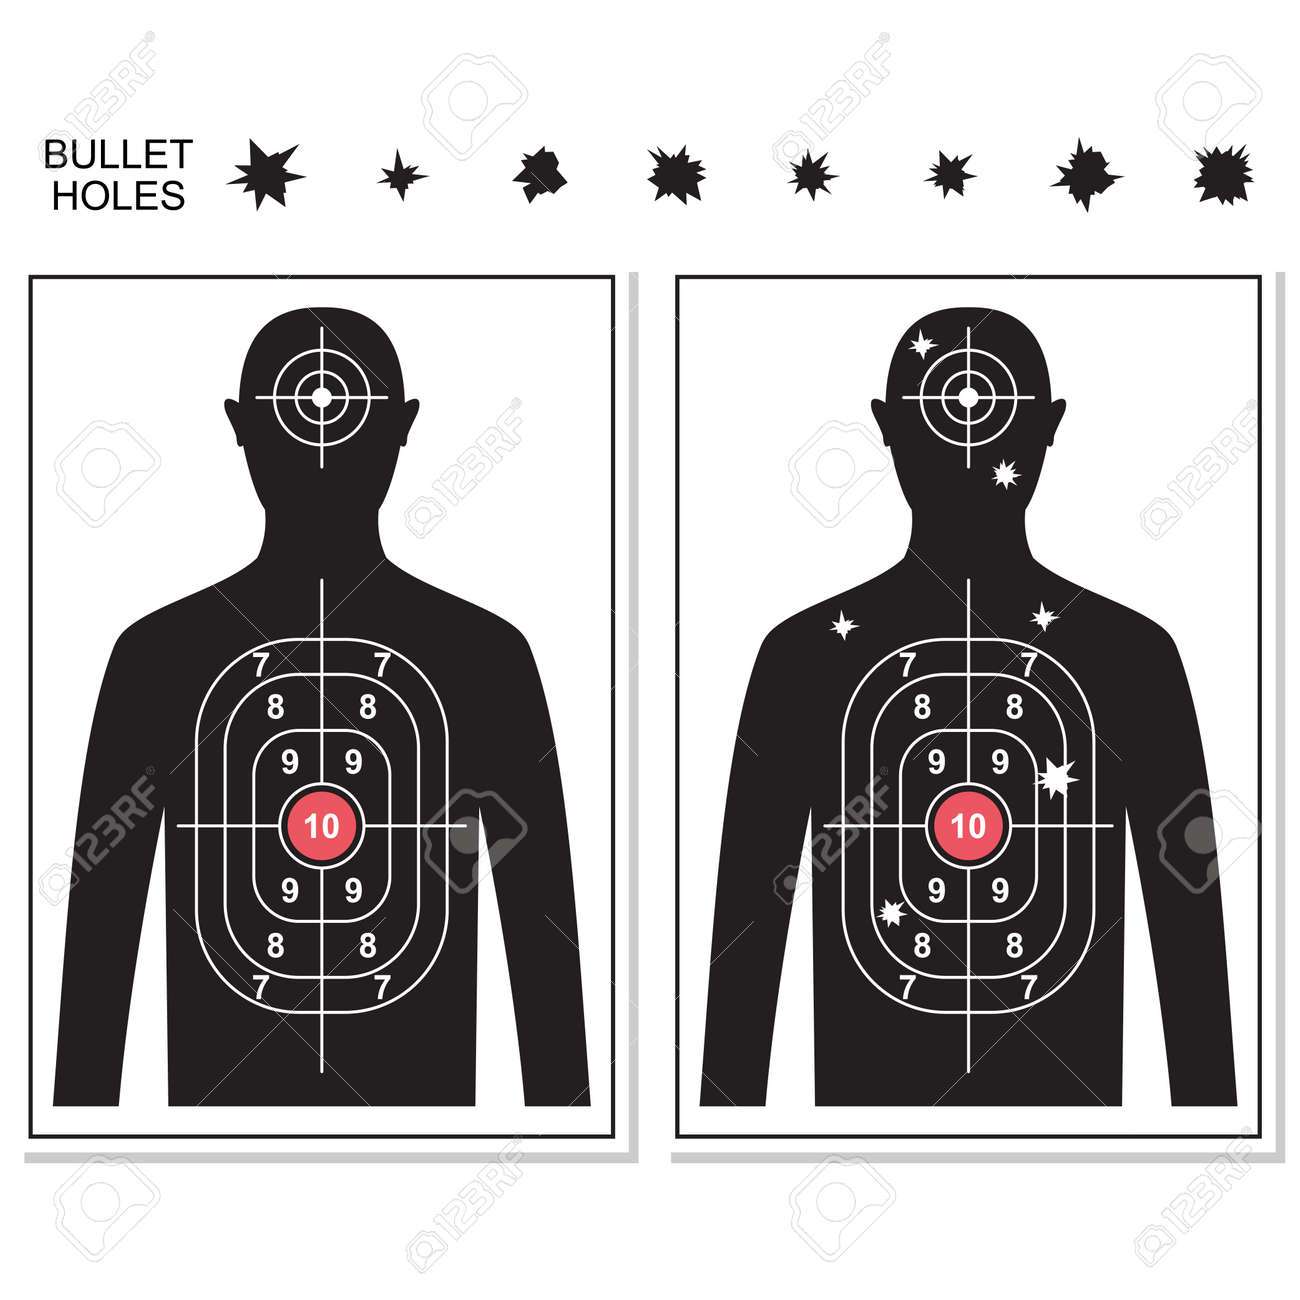 Shooting targets and bullet holes vector cartoon set isolated on white background. - 172747840